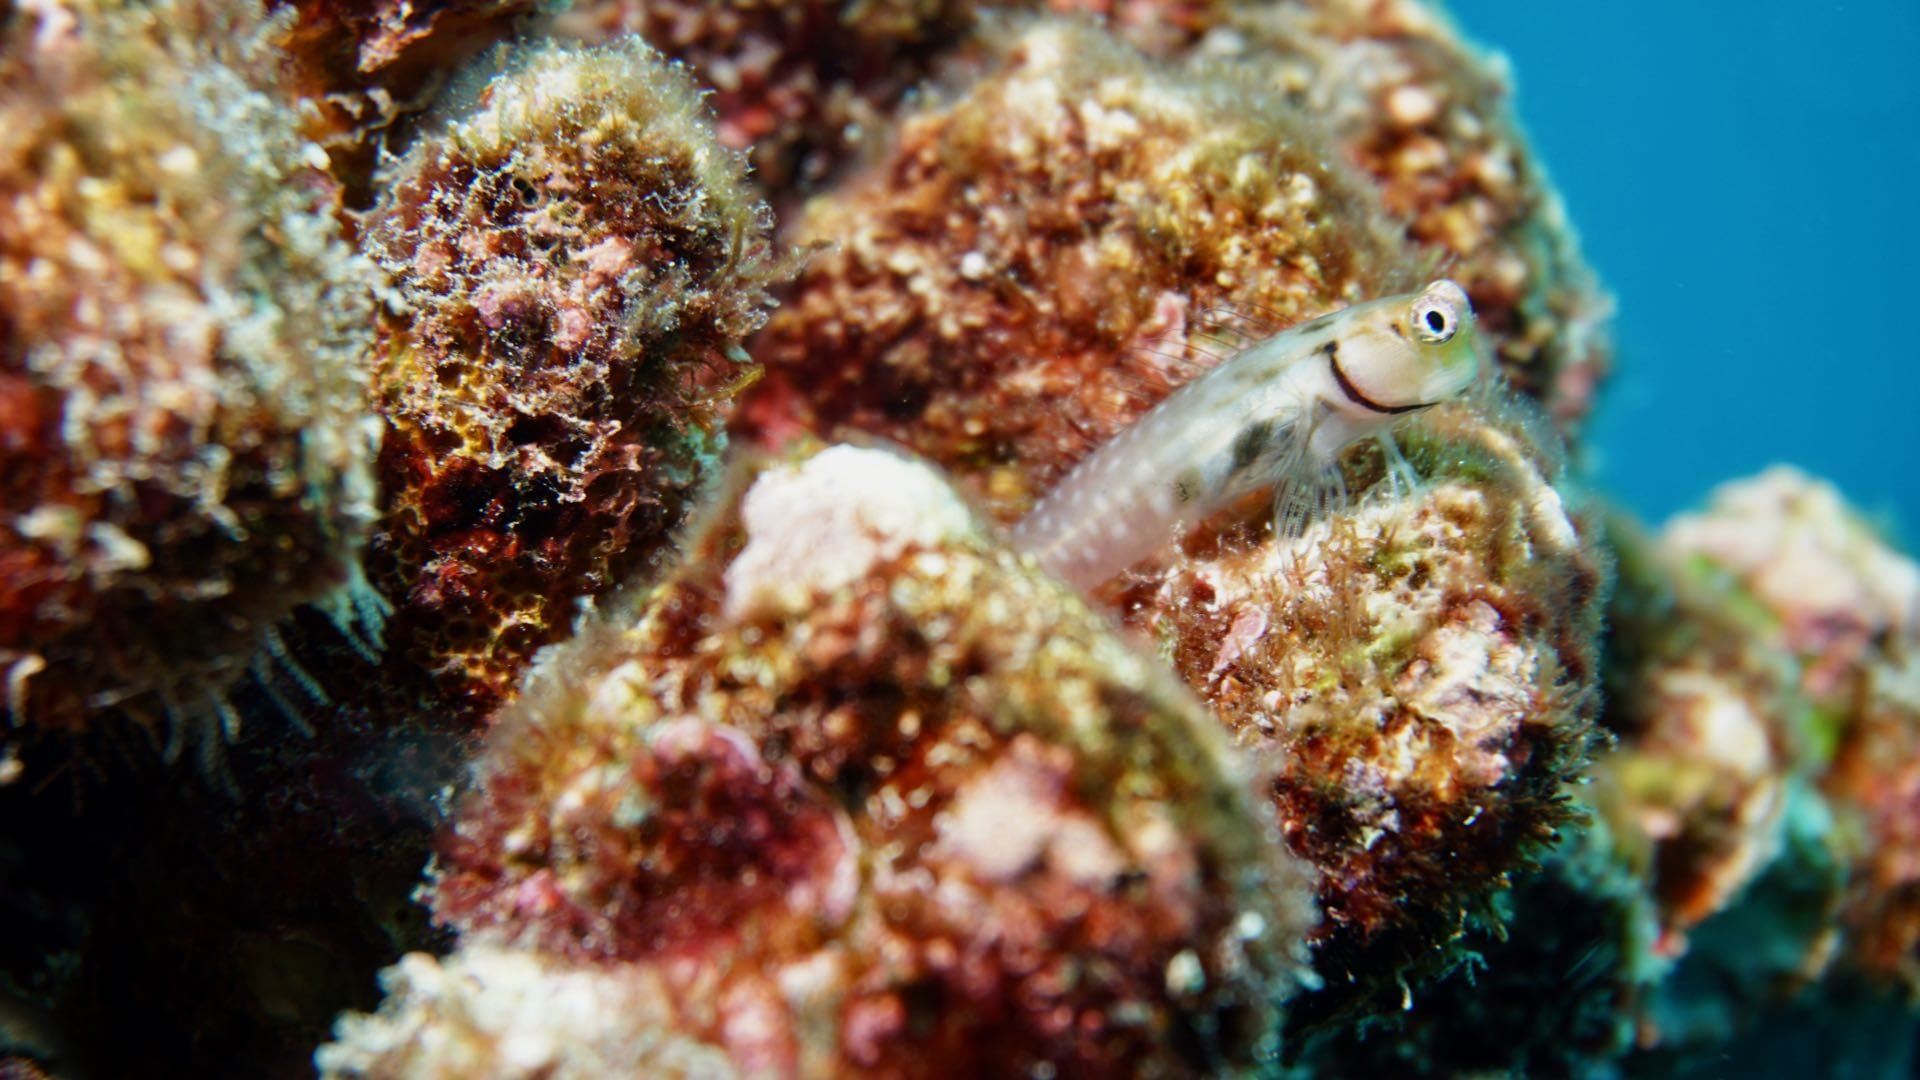 divemood emperor orion south trip blenny